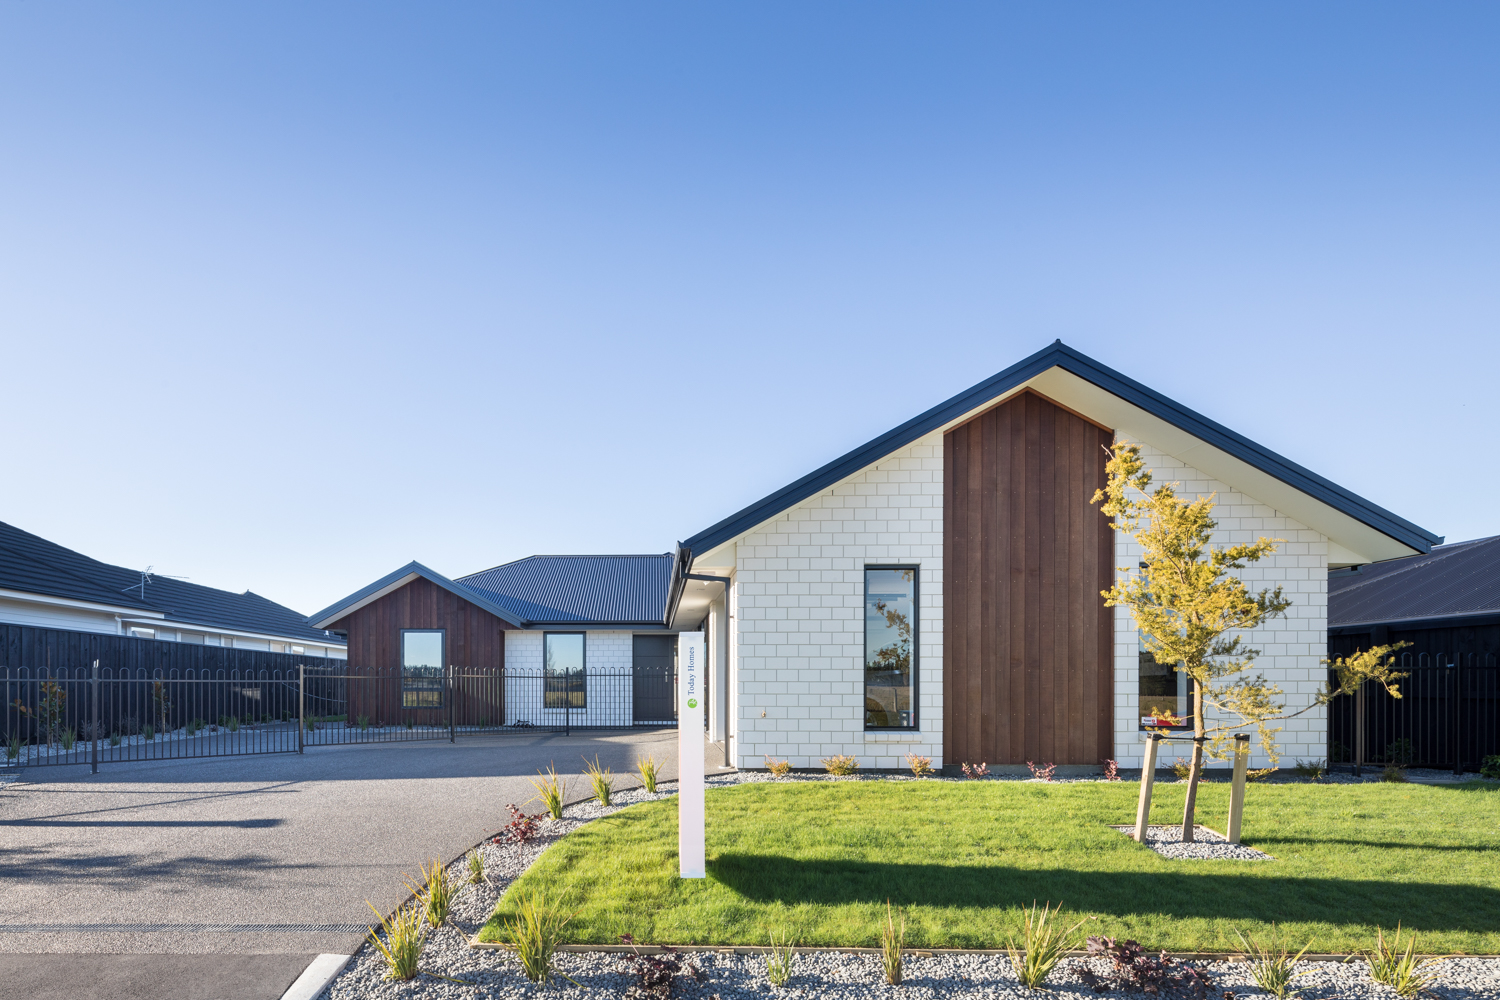 TH_Rolleston_Showhomes_031.jpg